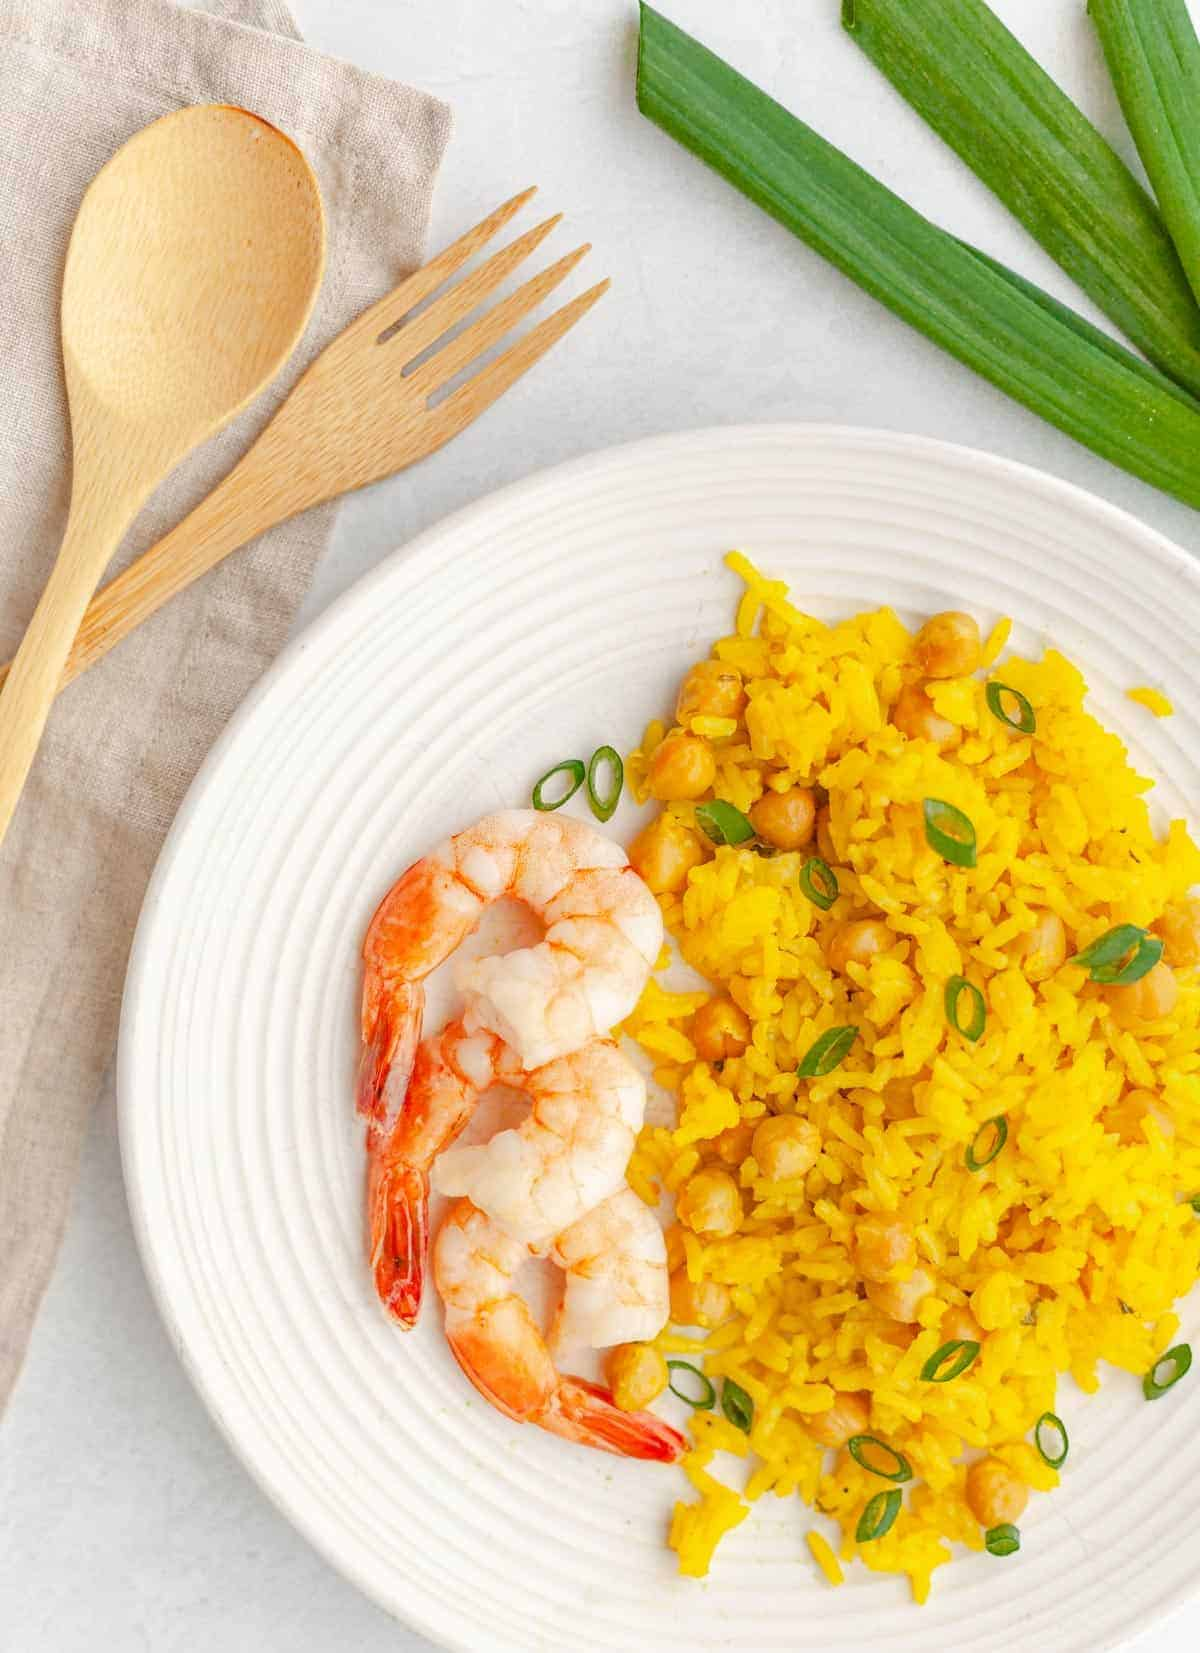 Yellow turmeric coconut rice on a plate with shrimp garnished with green onions